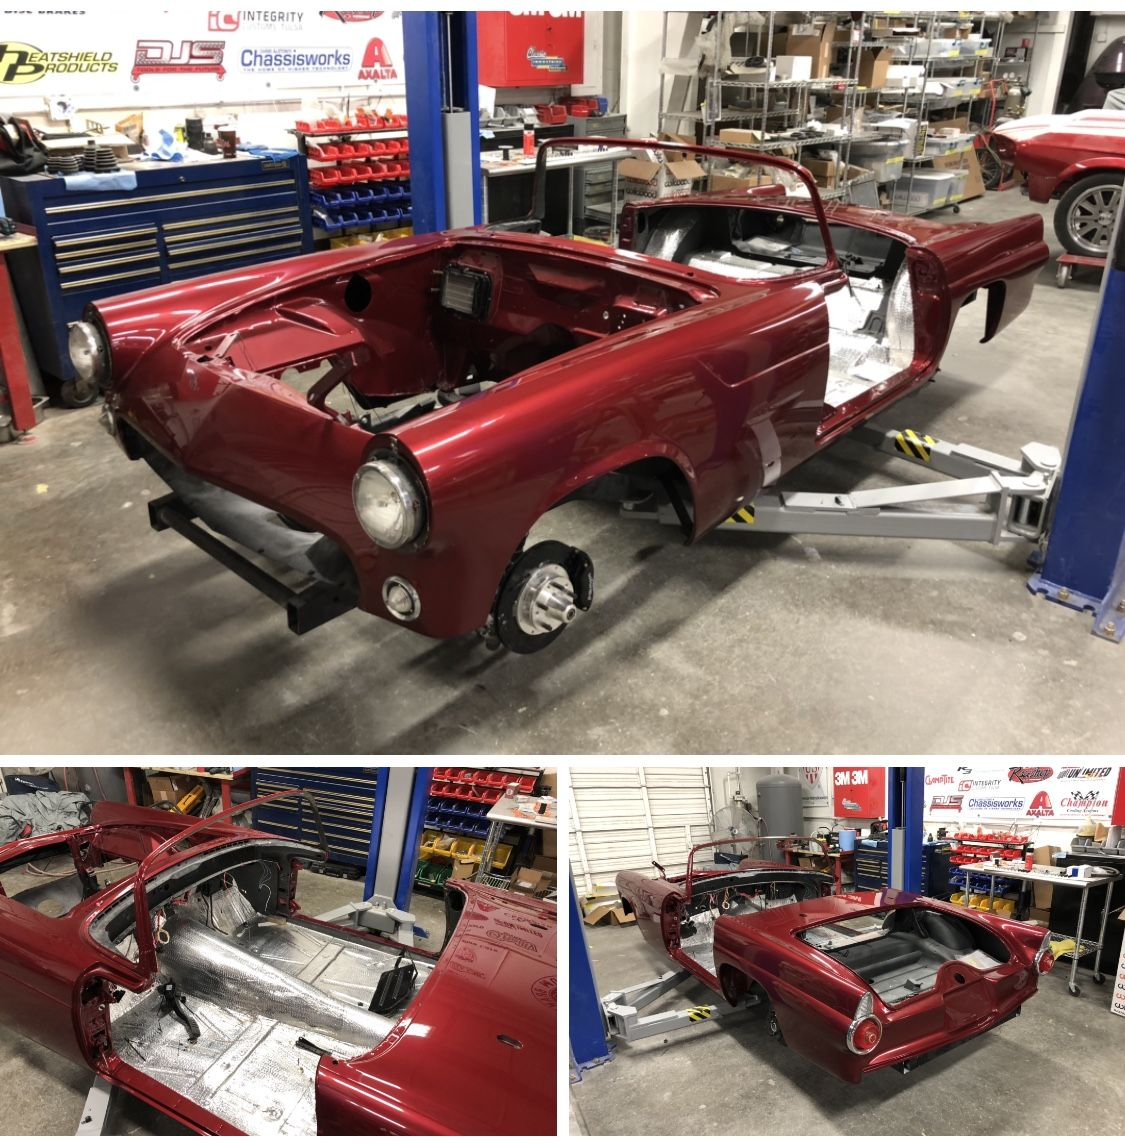 1955 Thunderbird Restomod Restoration Is In The Build Shop And Looking Good Almost Time For The Coyote Moto Classic Cars Muscle Custom Metal Fabrication Foose